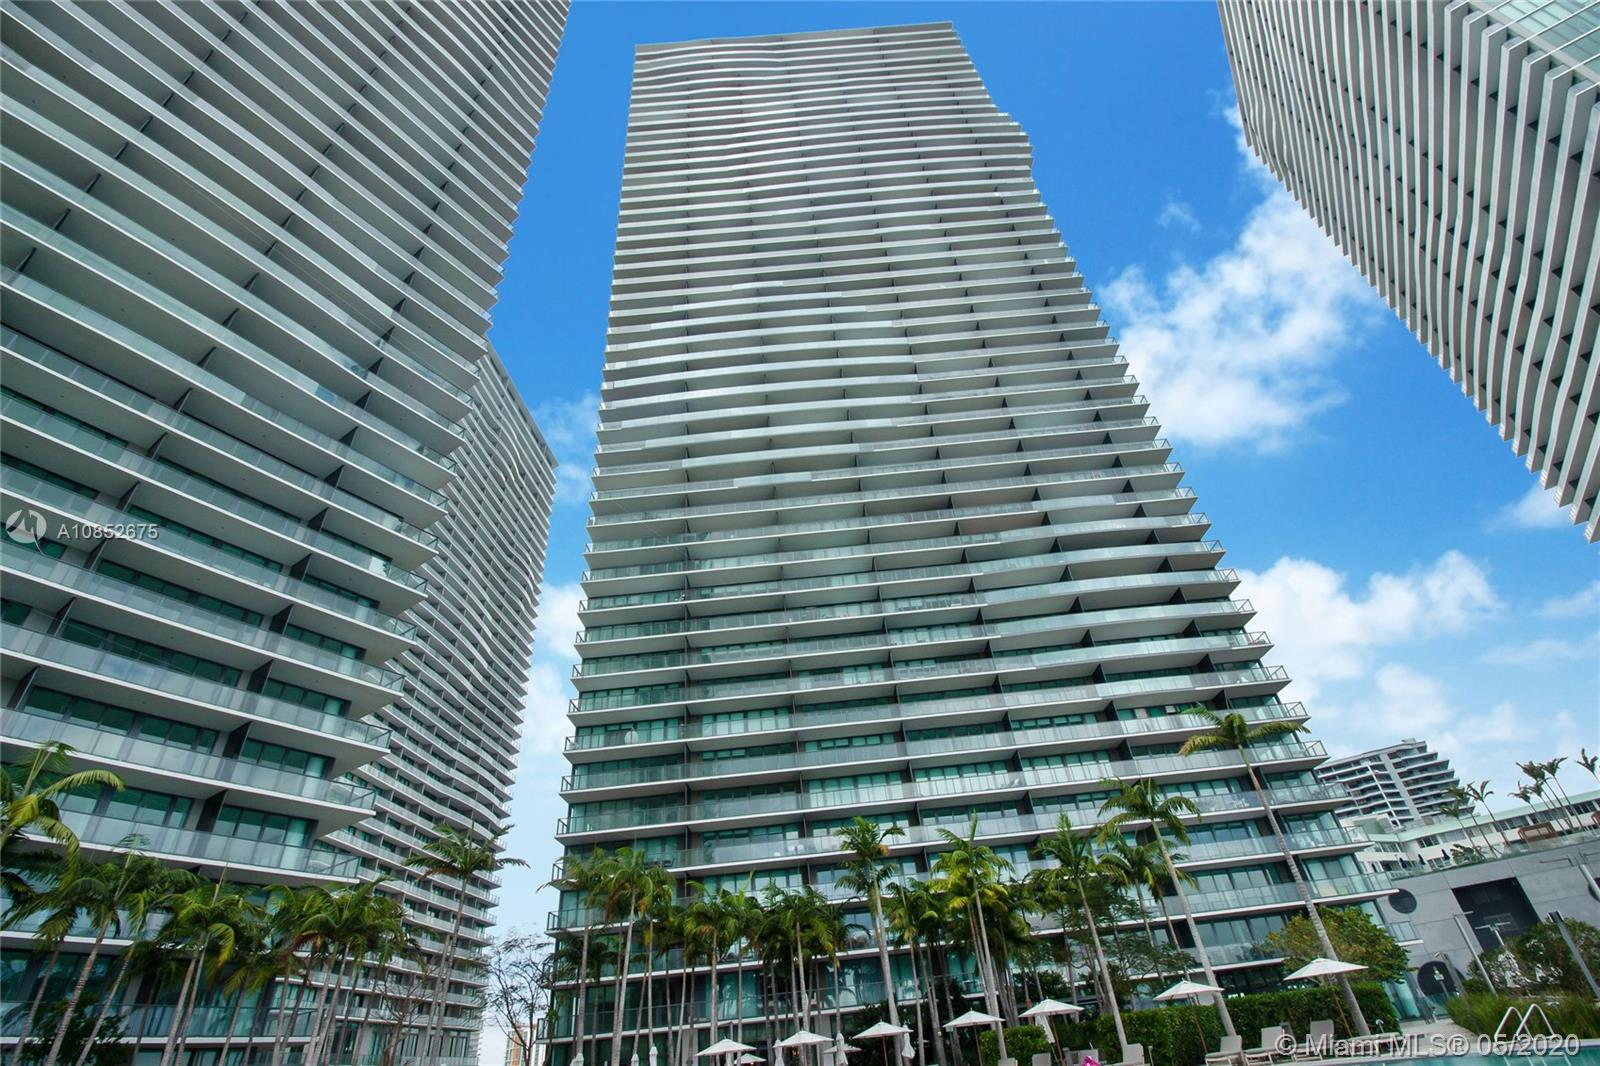 Photo of 650 NE 32 St. #1601 listing for Sale